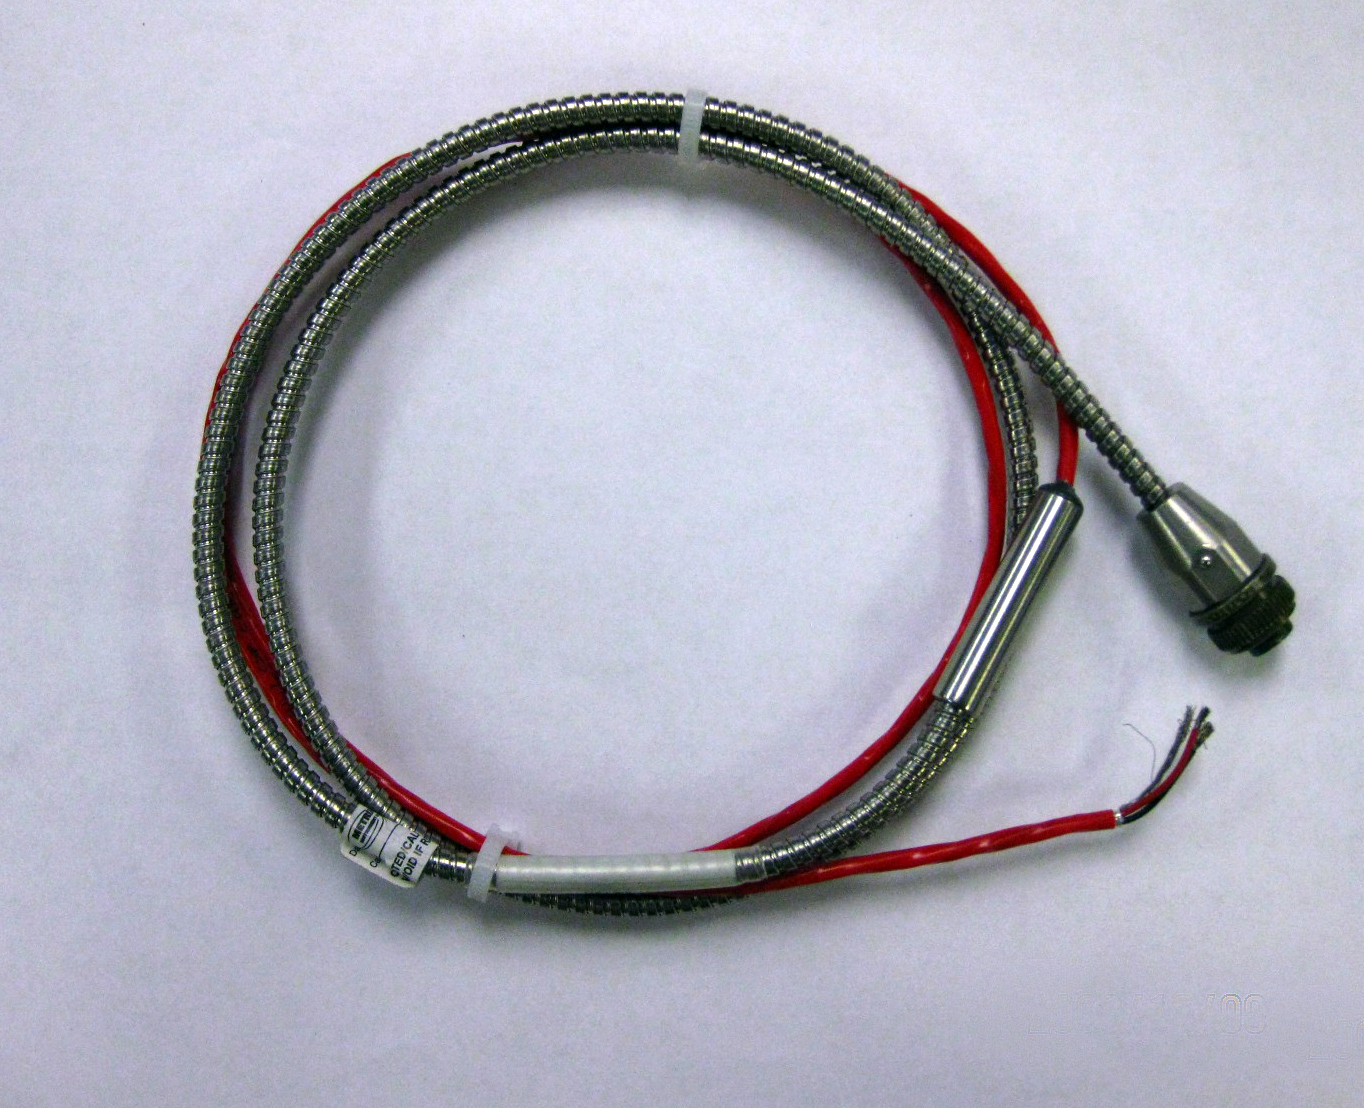 Armored Cable Stainless : Cable assembly with stainless steel armor